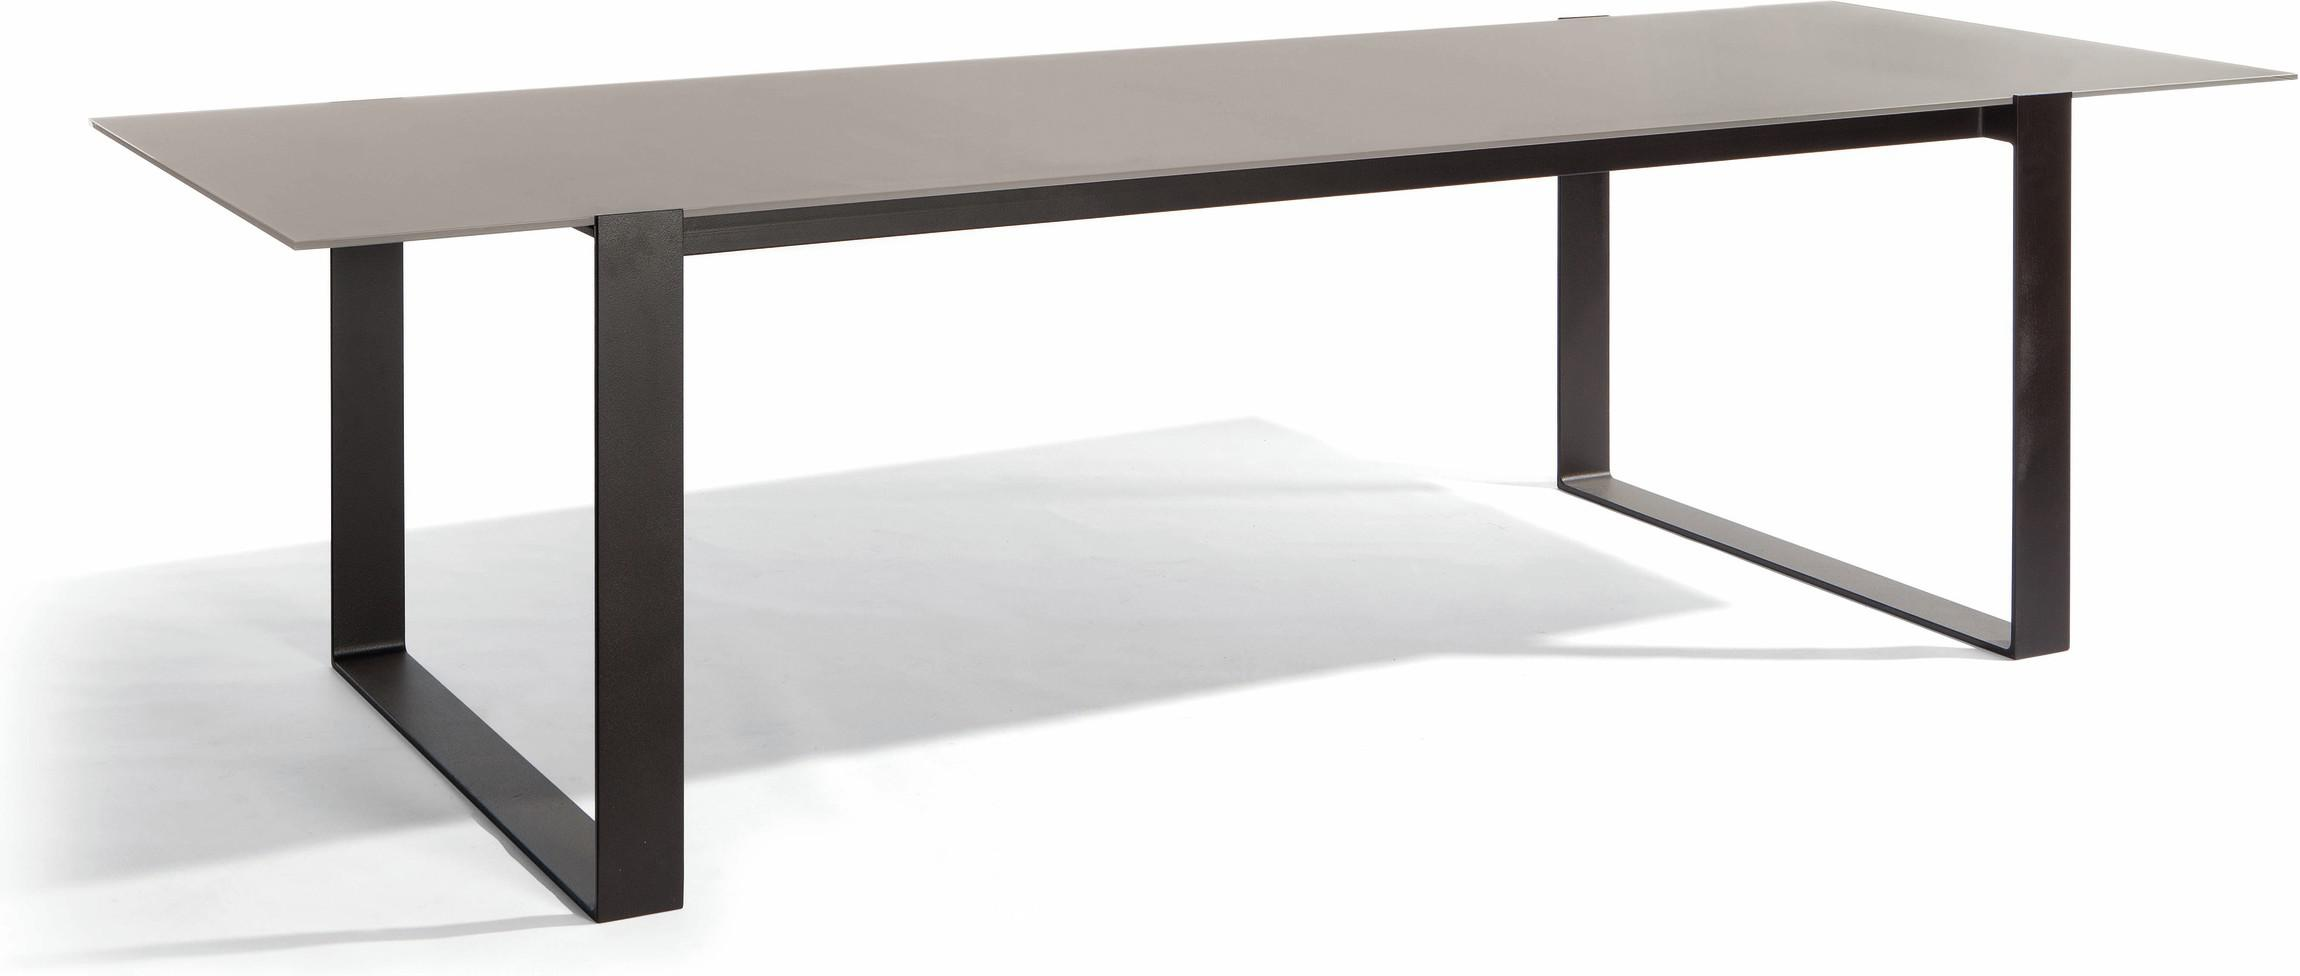 Prato Dining table - lava - glass taupe 270